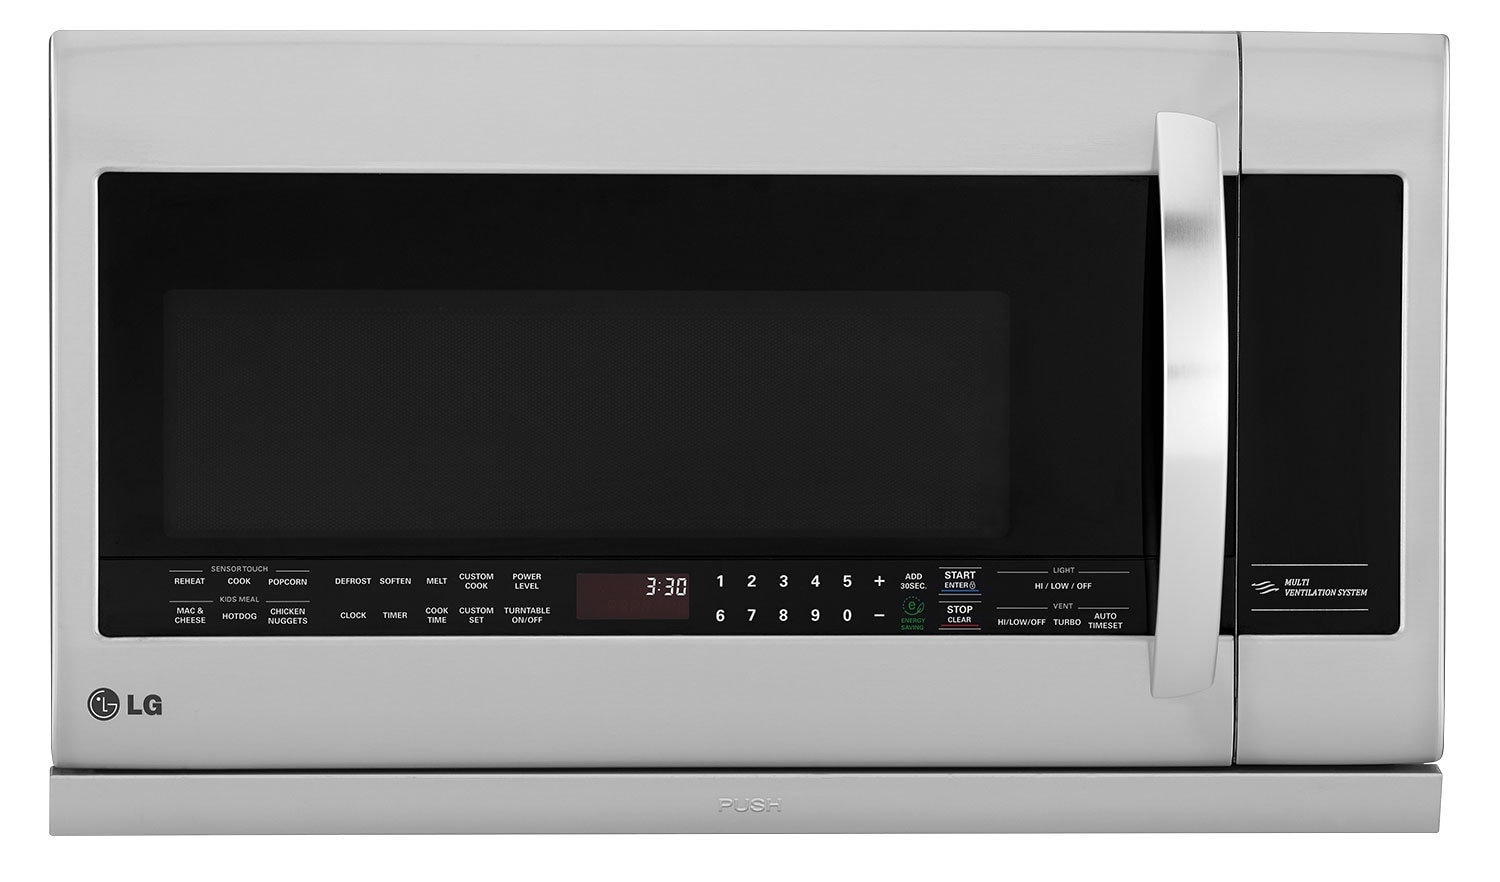 Cooking Products - LG 2.2 Cu. Ft. Over-the-Range Microwave – Stainless Steel